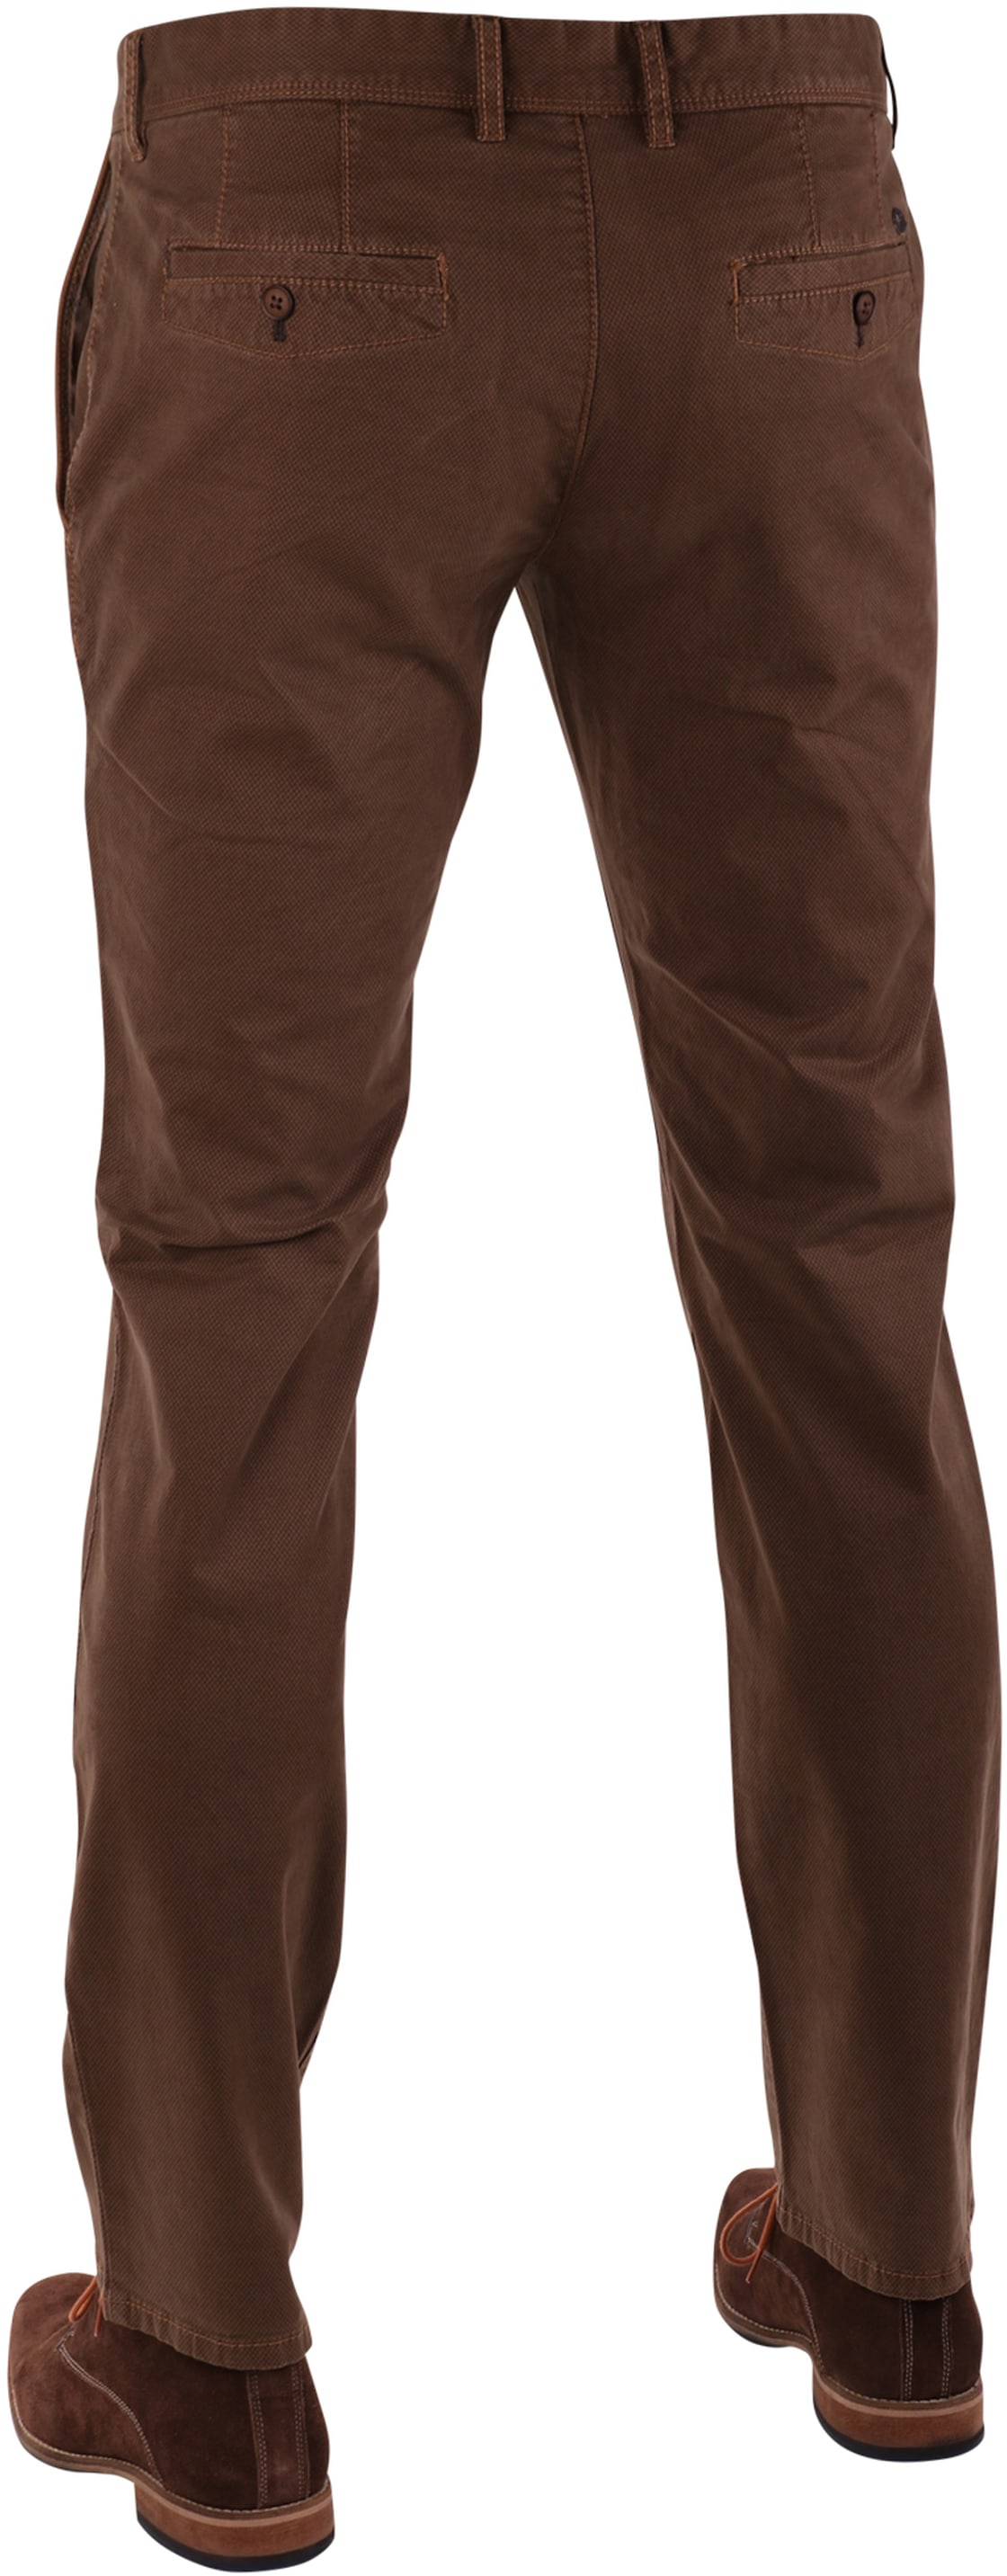 Suitable Chino Hose Khaki Print